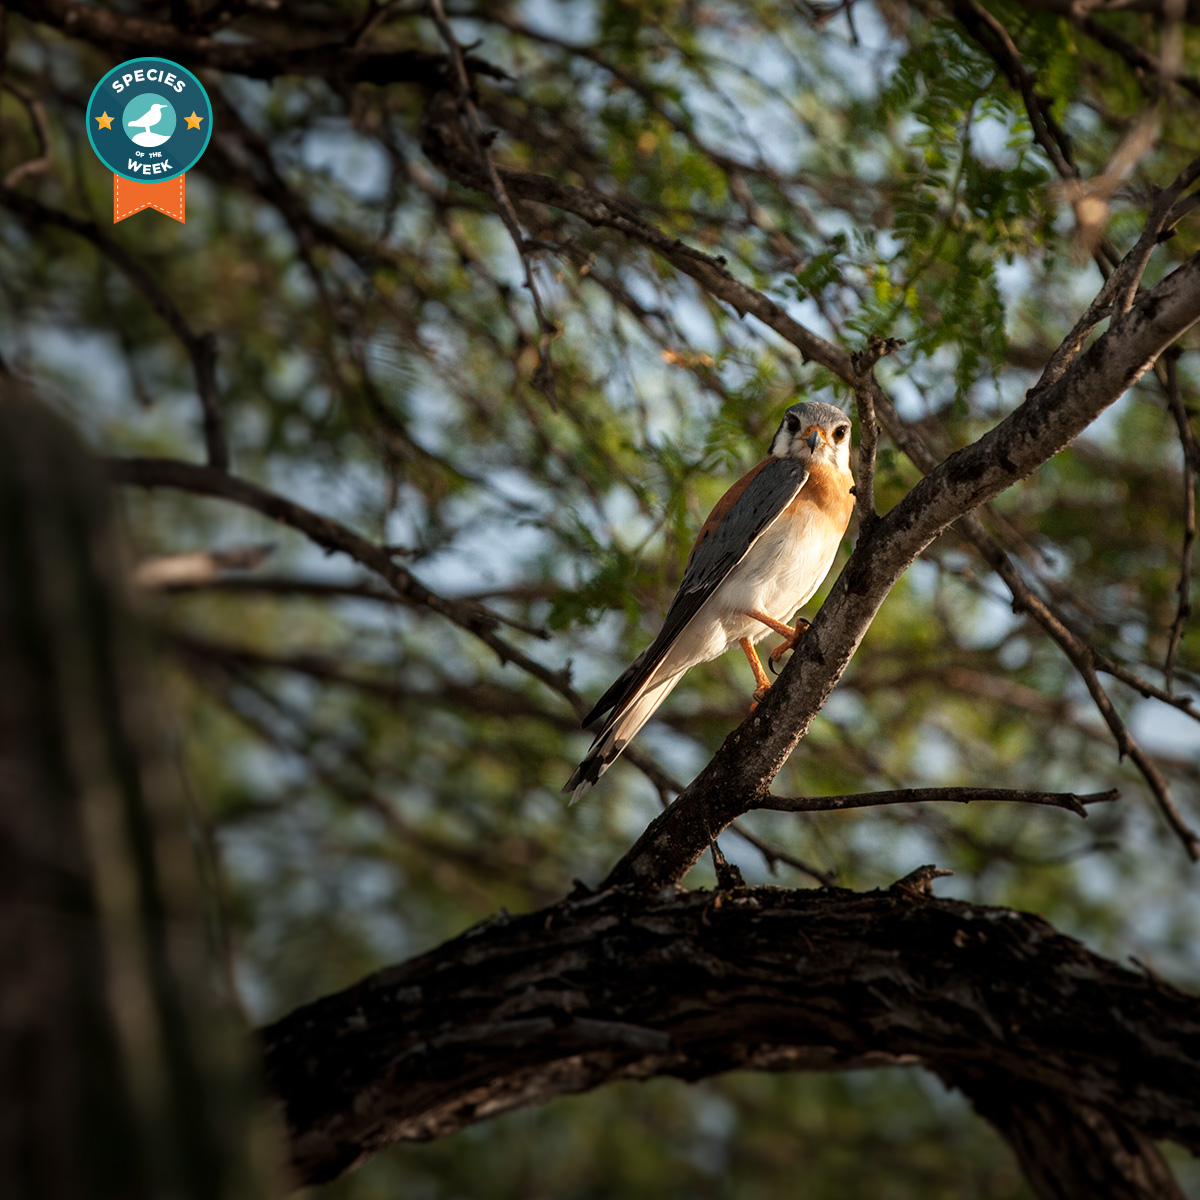 The American Kestrel is known for its exceptional eyesight.